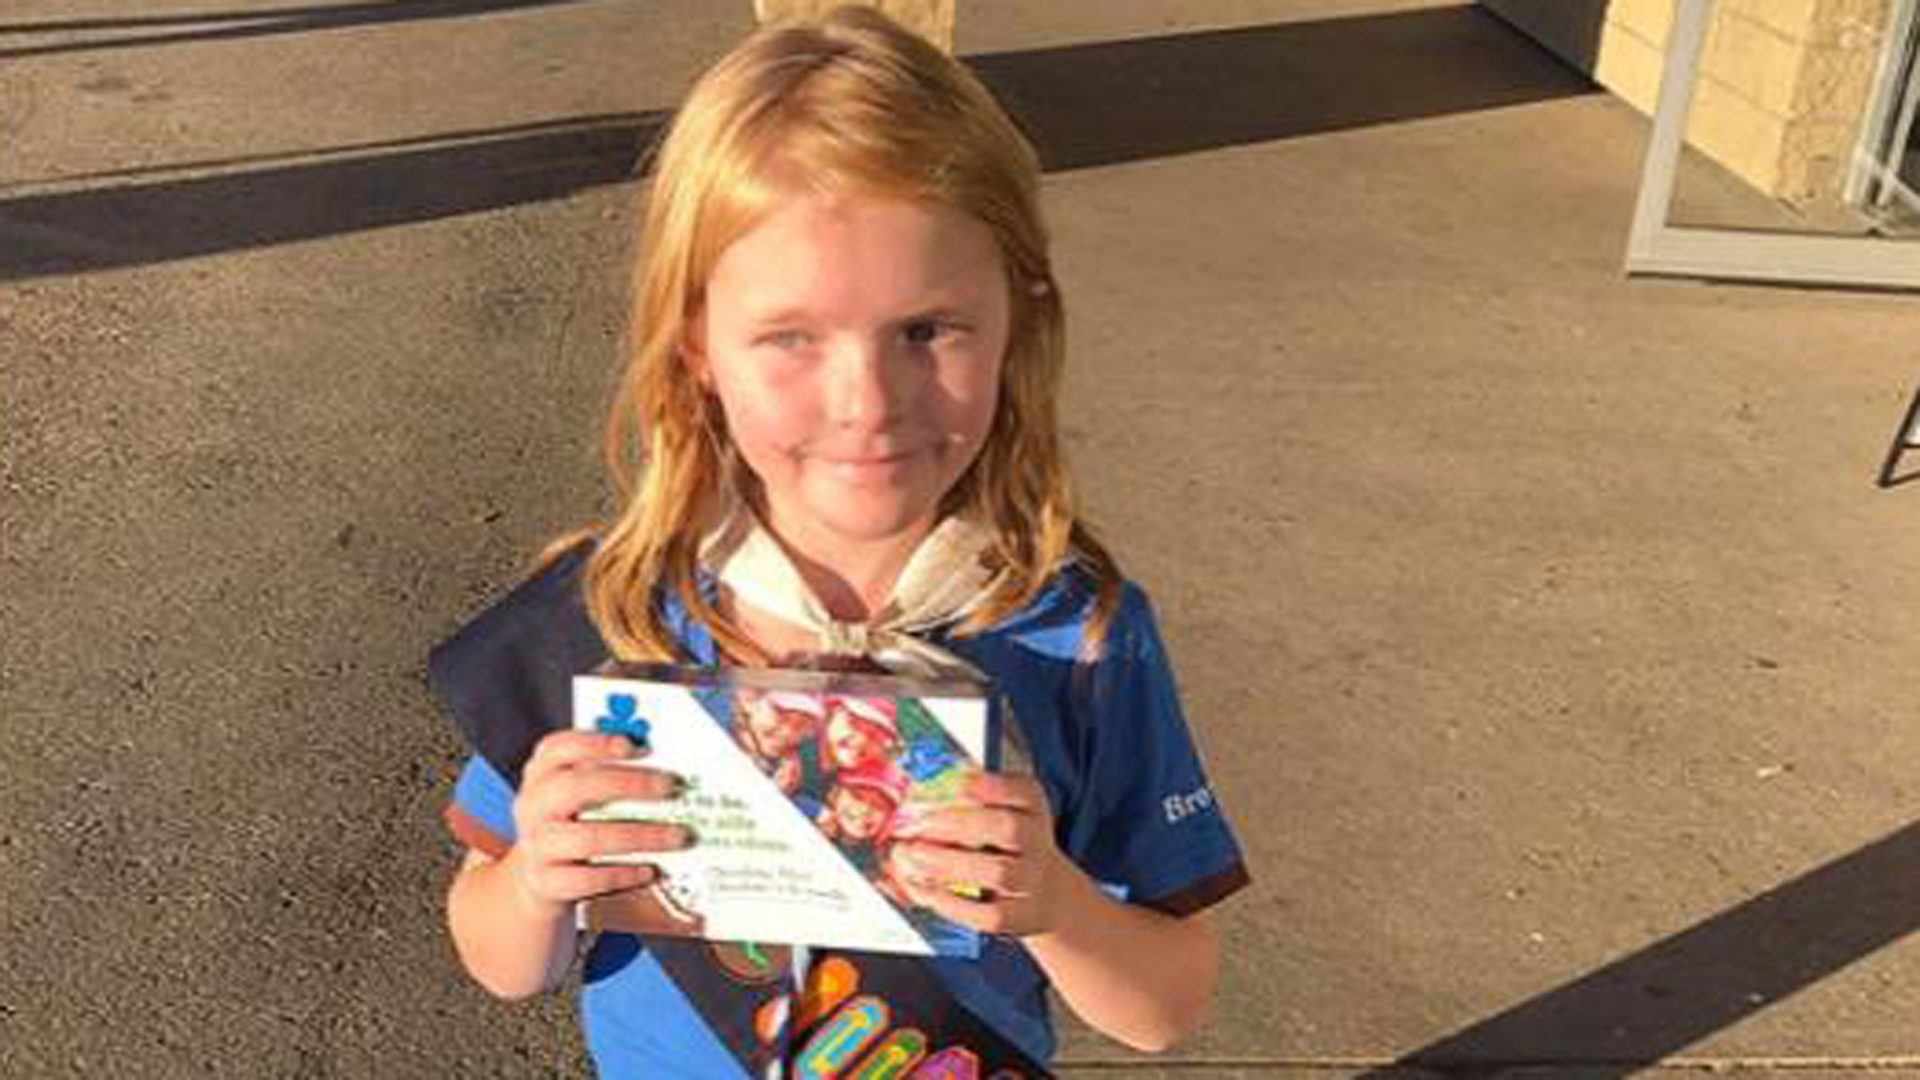 Elina Childs is seen holding a box of Girl Scout cookies.(Credit: Seann Childs via CNN Wire)